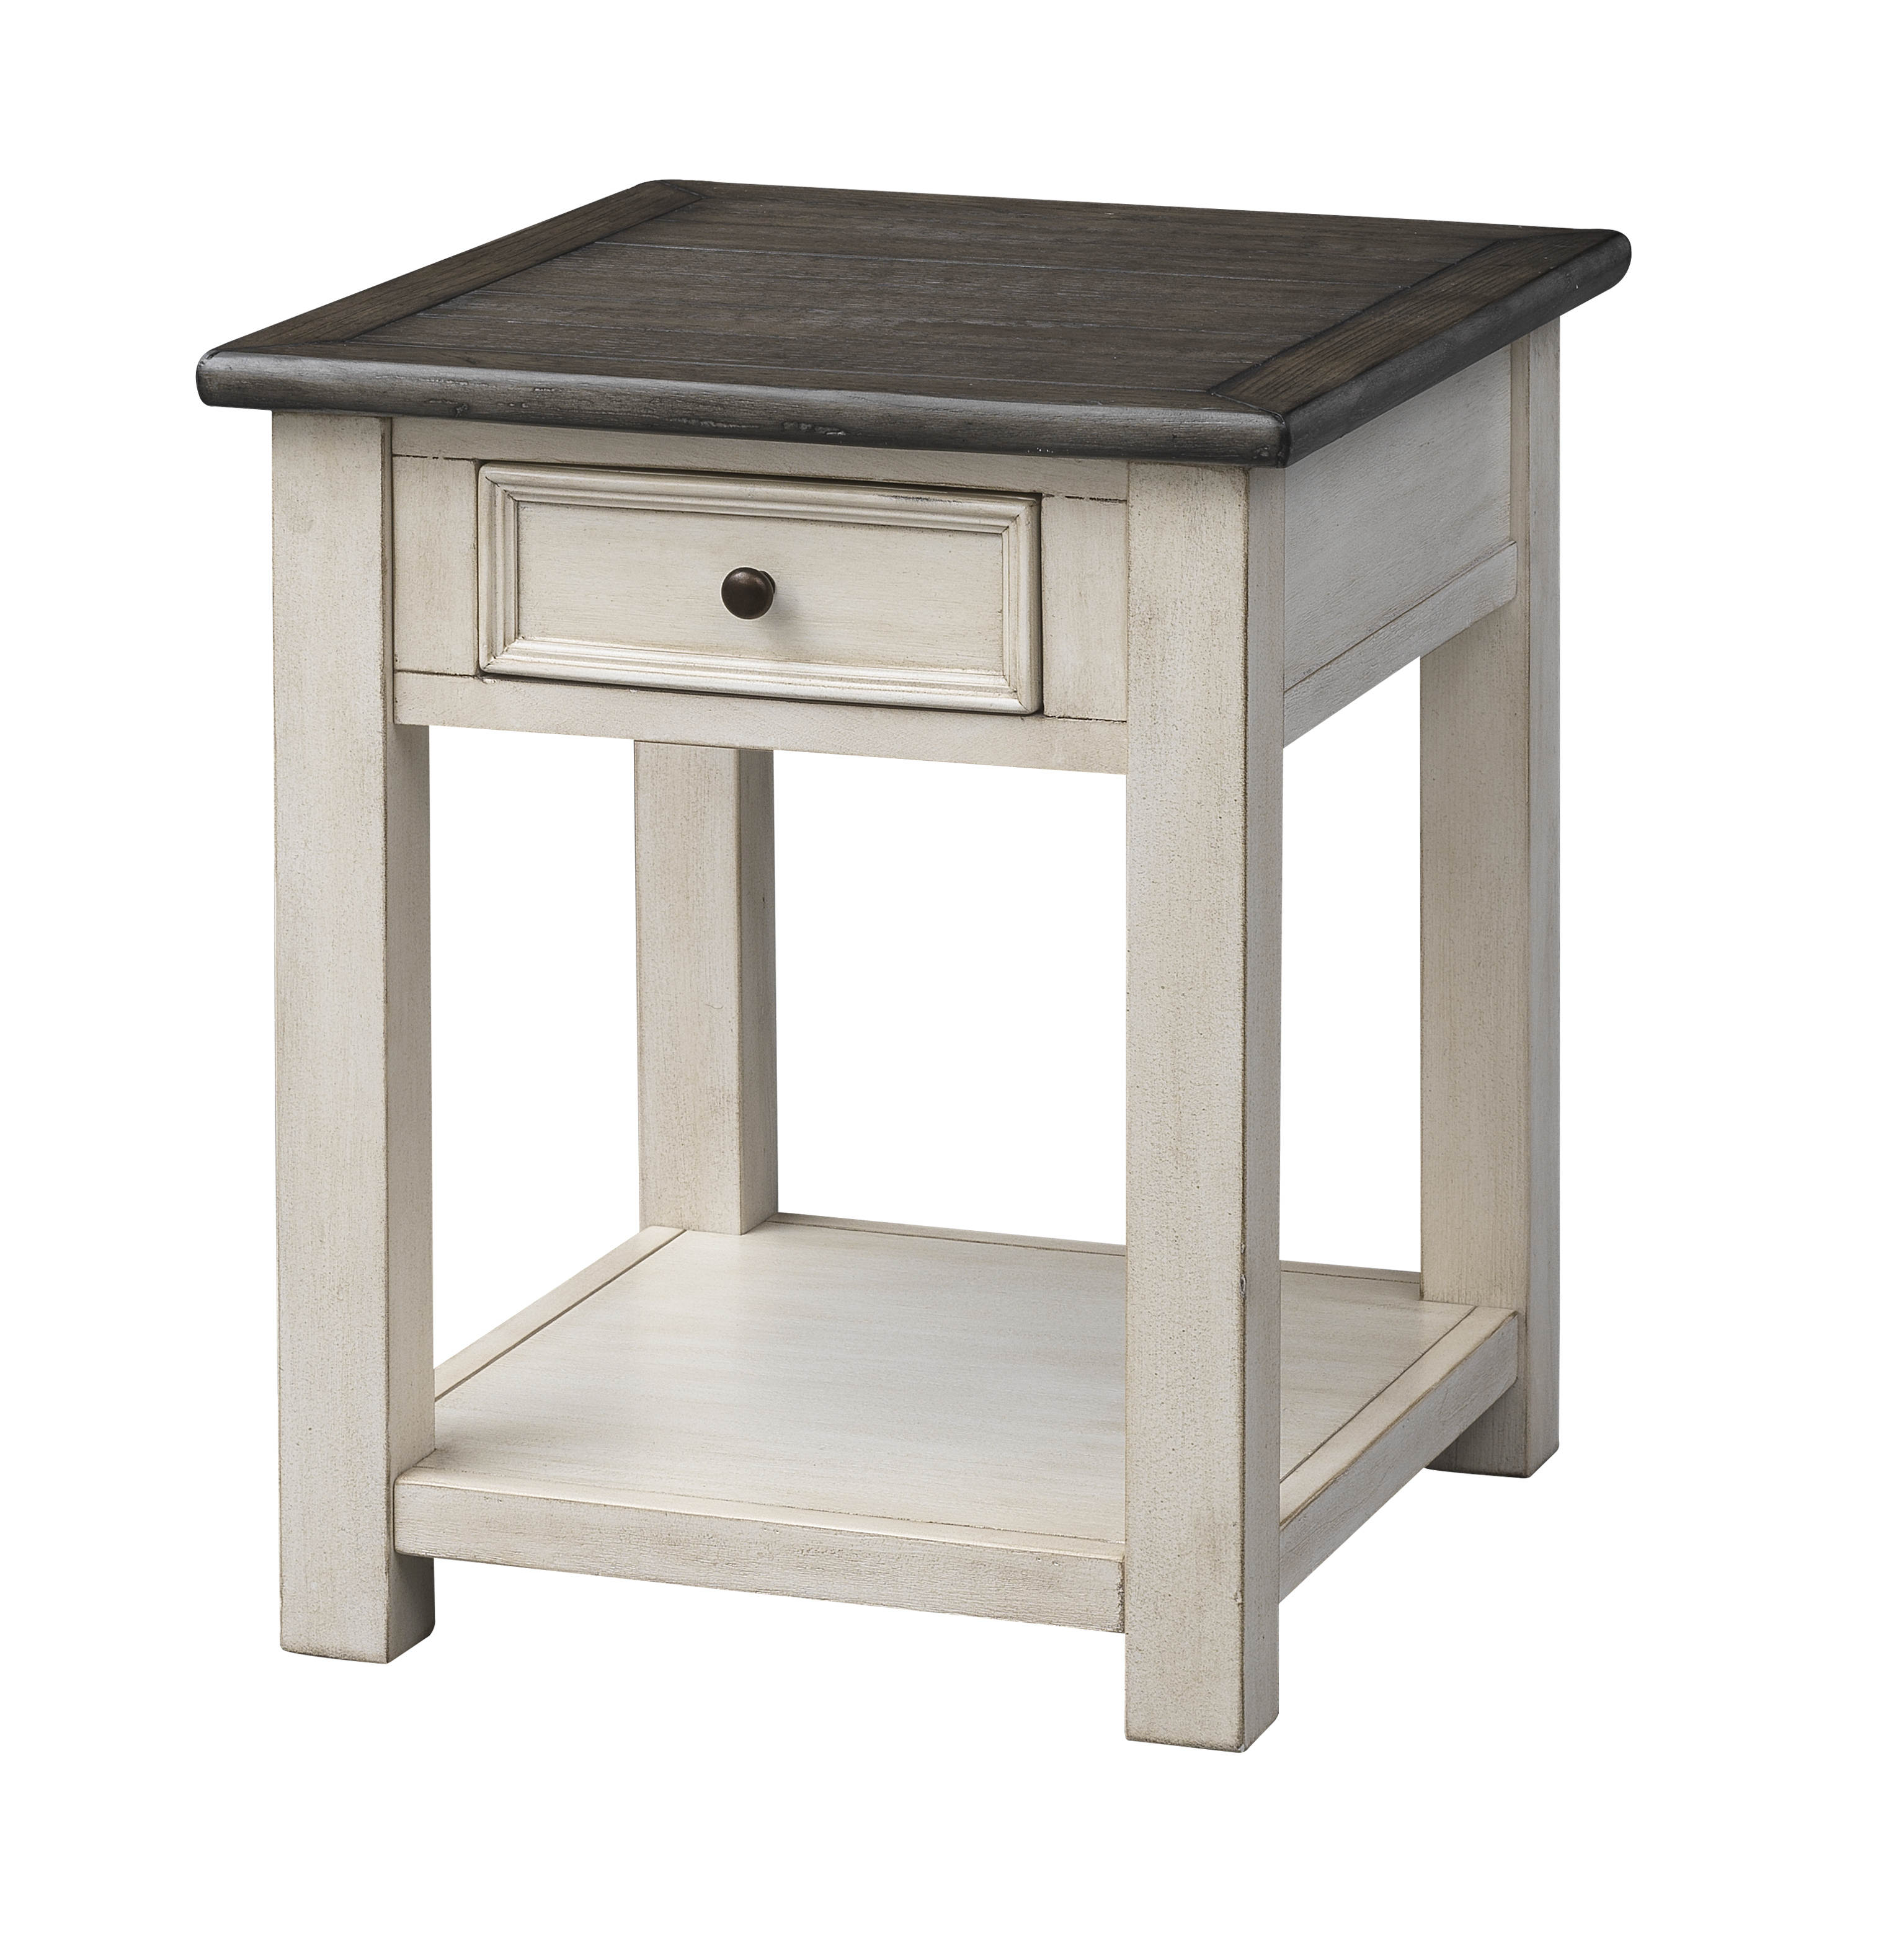 Pleasing Coast To Coast St Claire Ivory Cream End Table Caraccident5 Cool Chair Designs And Ideas Caraccident5Info